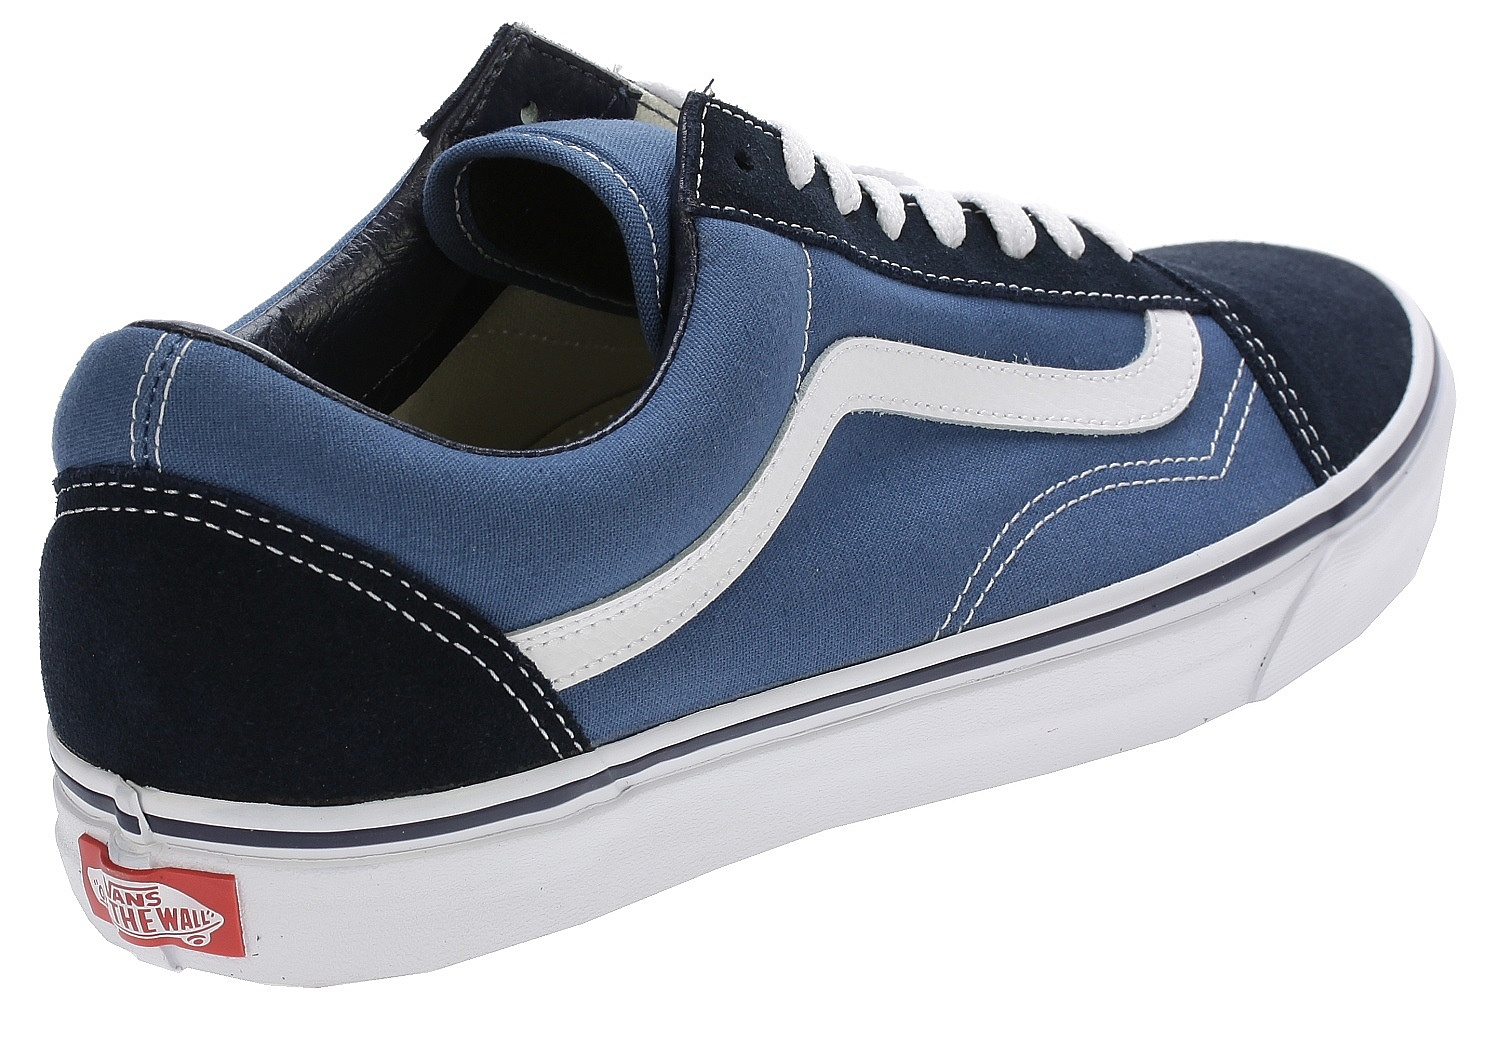 boty Vans Old Skool - Navy - Snowboard shop, skateshop ...